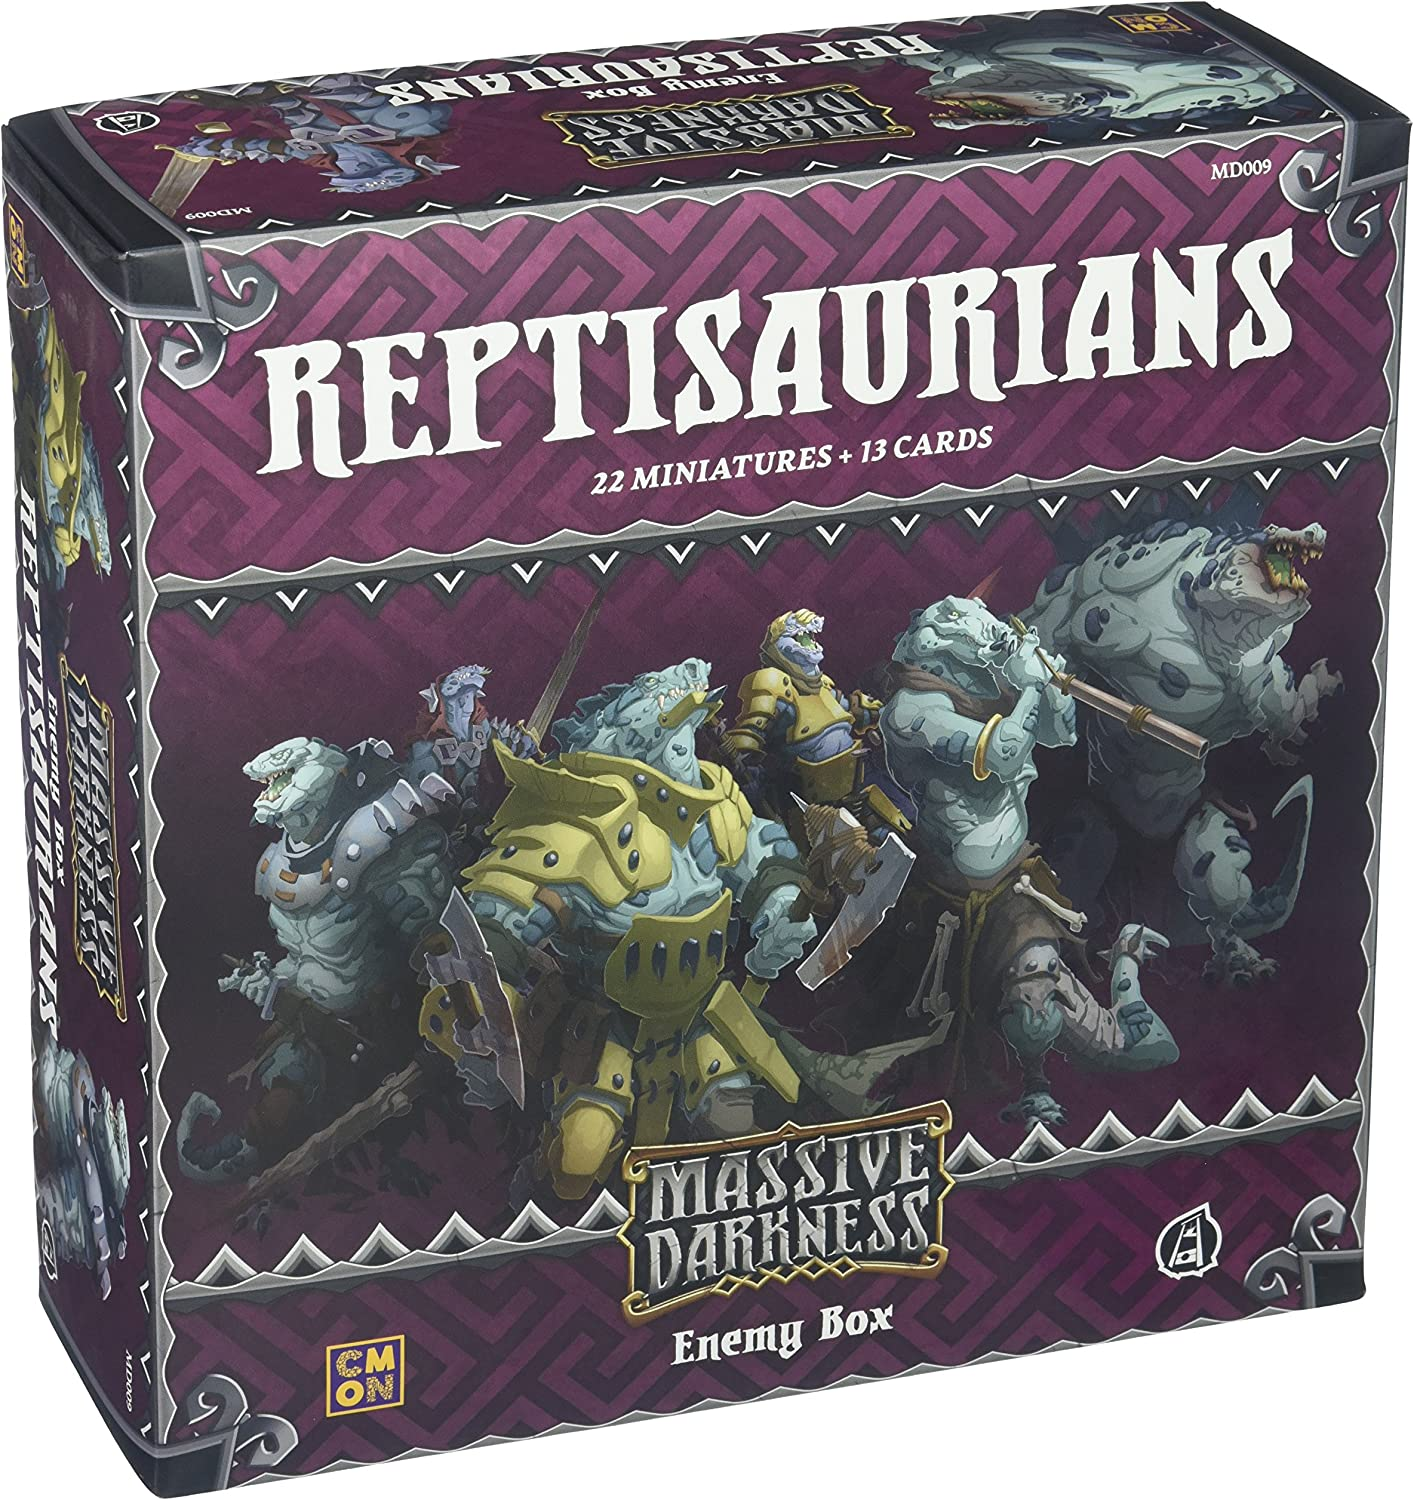 Massive Darkness: Reptisaurians Enemy Box: Amazon.es: Amazon.es